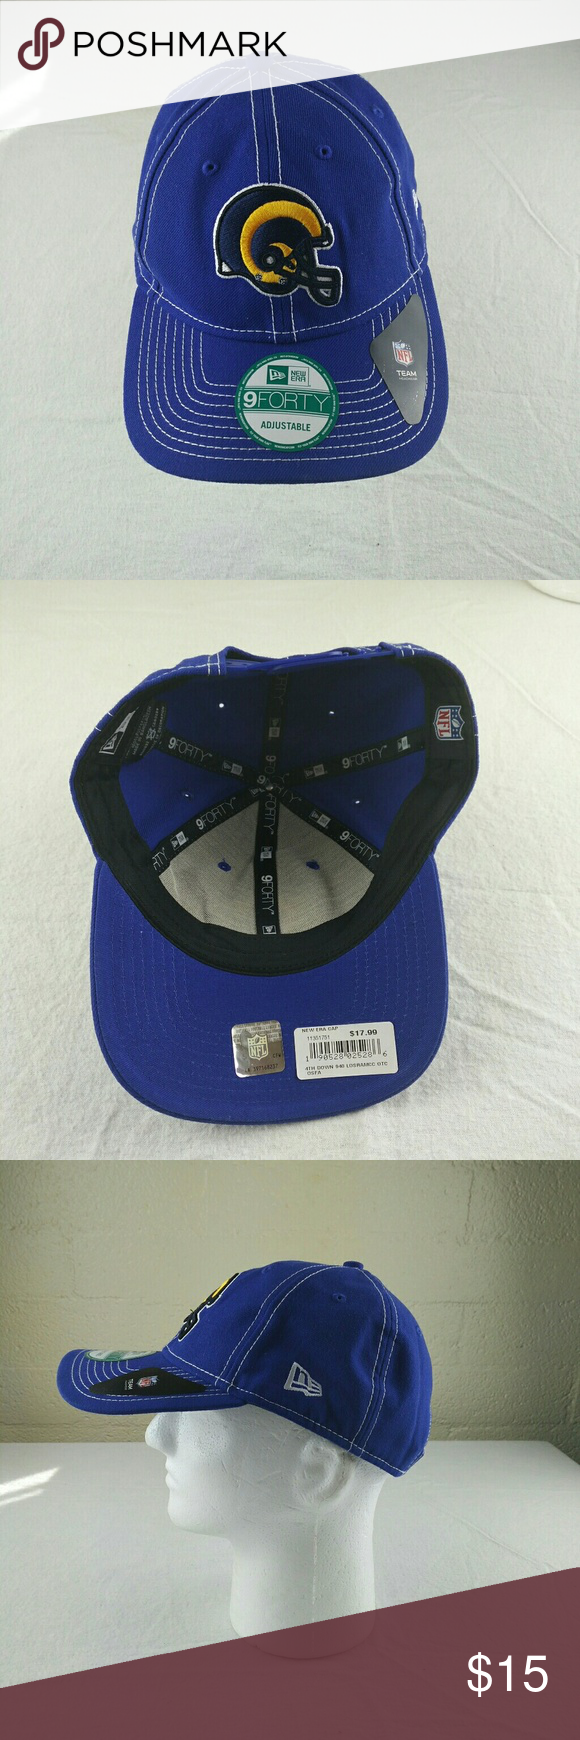 best service 163d9 bcd50 Los Angeles Rams NEW Era 9forty Adjustable Cap Los Angeles Rams NEW Era  9forty Adjustable Cap Brand New. Never been worn. New Era Accessories Hats